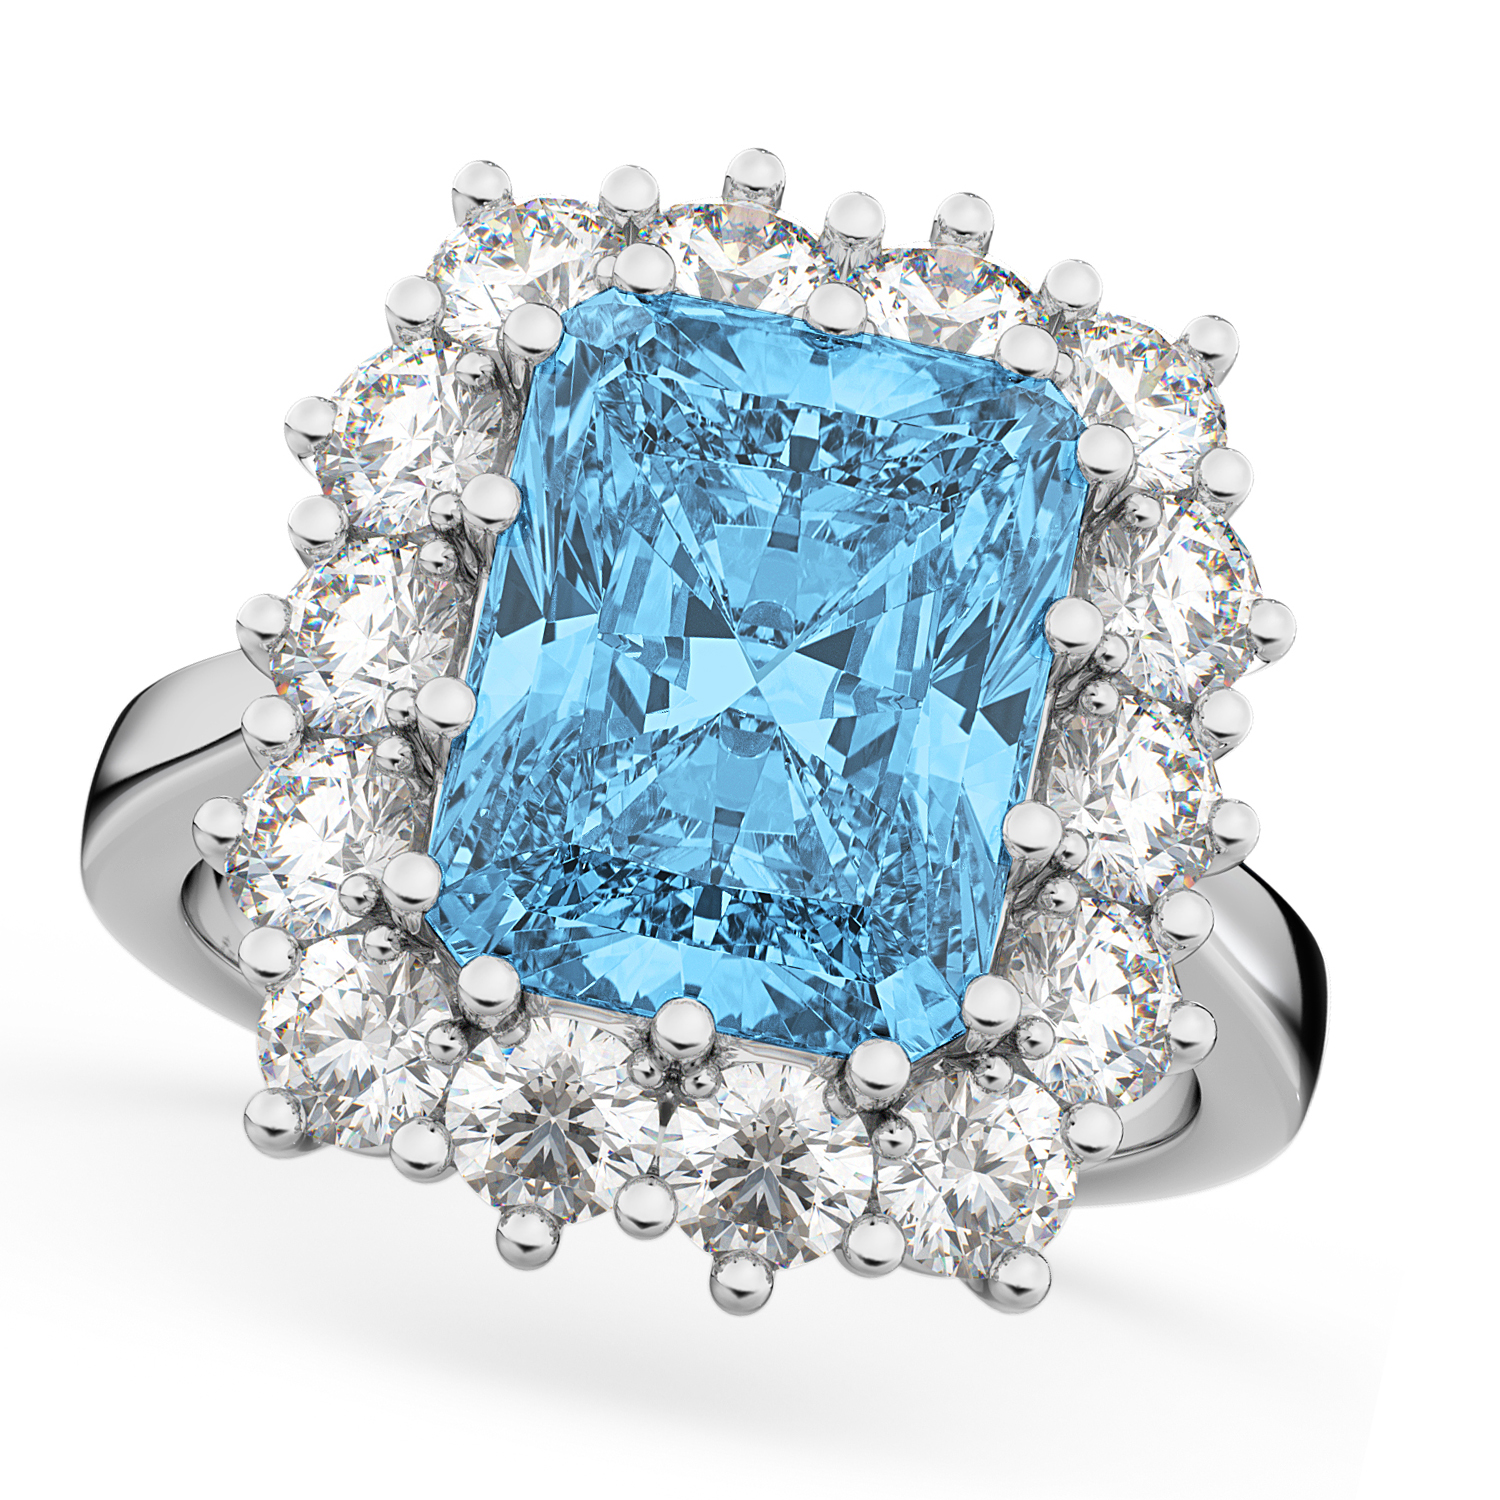 lives a rarer to ring gemstones copper exceptional hype high rare international blue and bright color tourmaline creates its this content with centerstone colored paraiba than ten gem diamond society article up